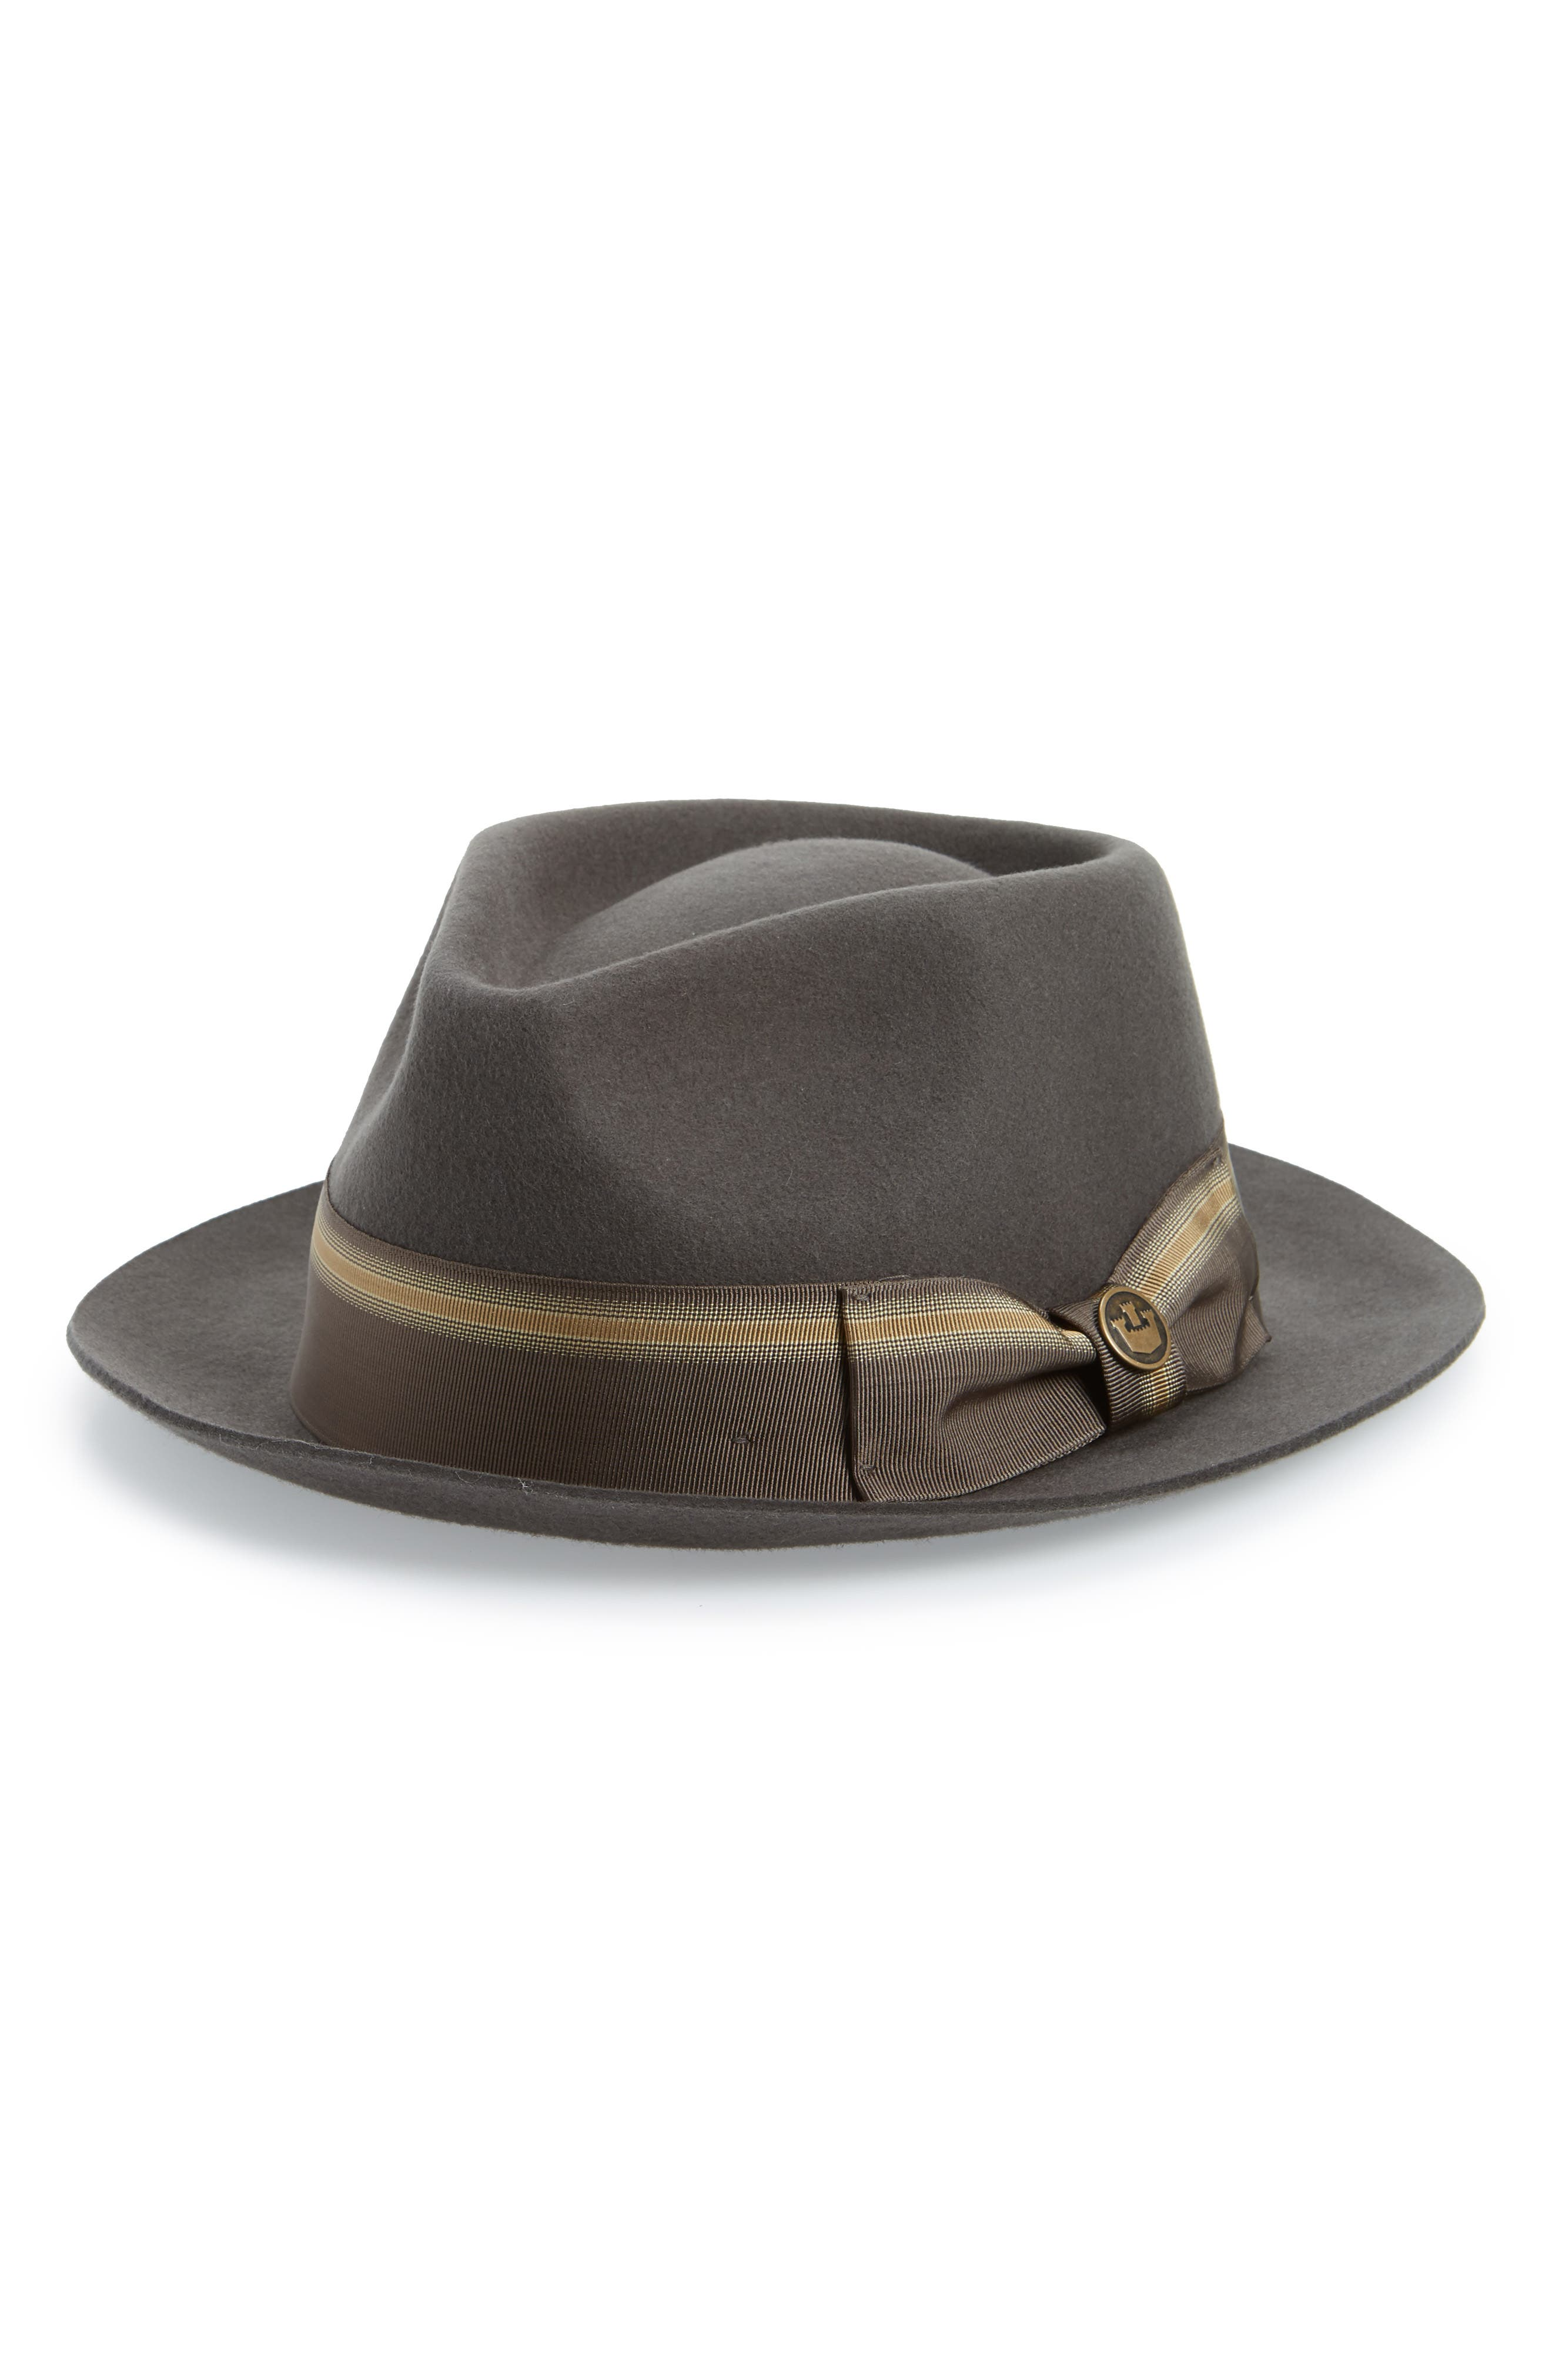 Star Boy Fedora,                         Main,                         color, GRAY